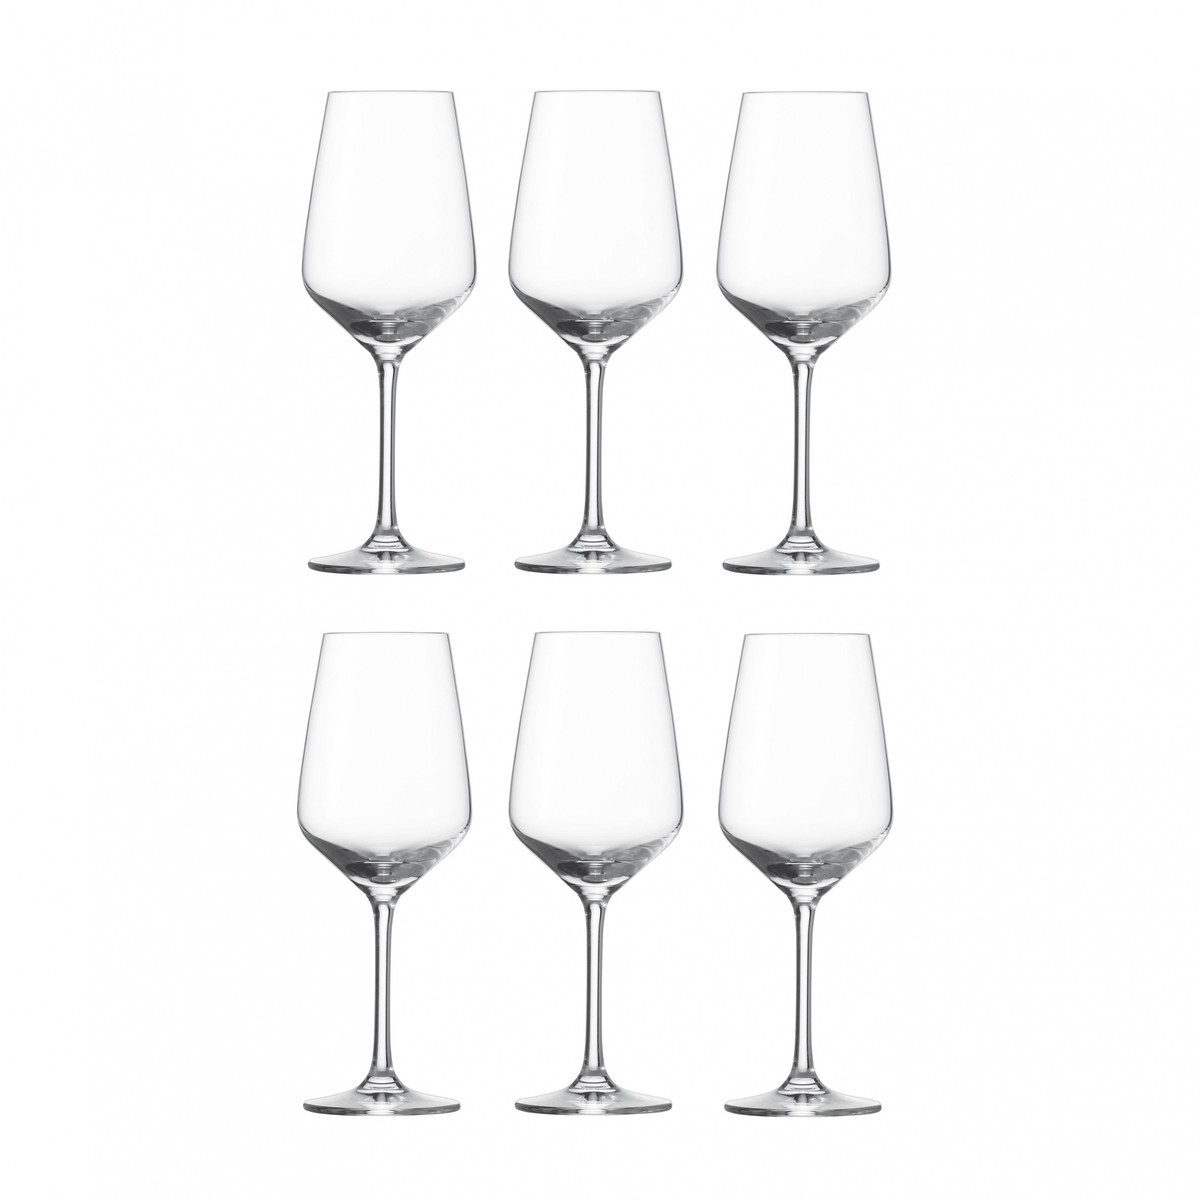 Affordable Wine Glasses Dining Room Gorgeous Schott Zwiesel Wine Glasses For